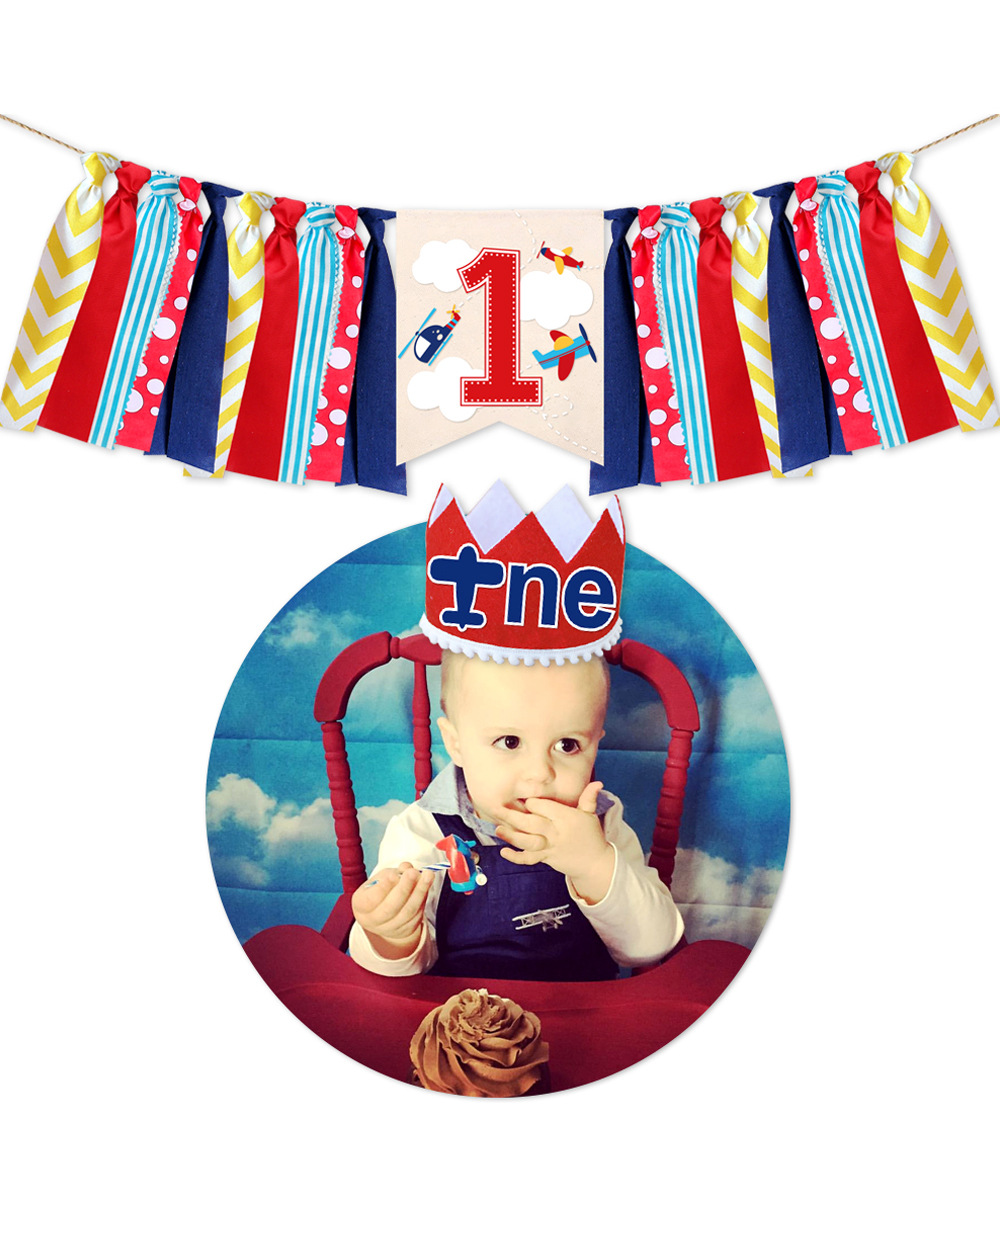 Airplane Theme Baby Birthday Birthday Flag Set Birthday Party Party Banner Decoration Supplies Anniversary Children Party Suppli